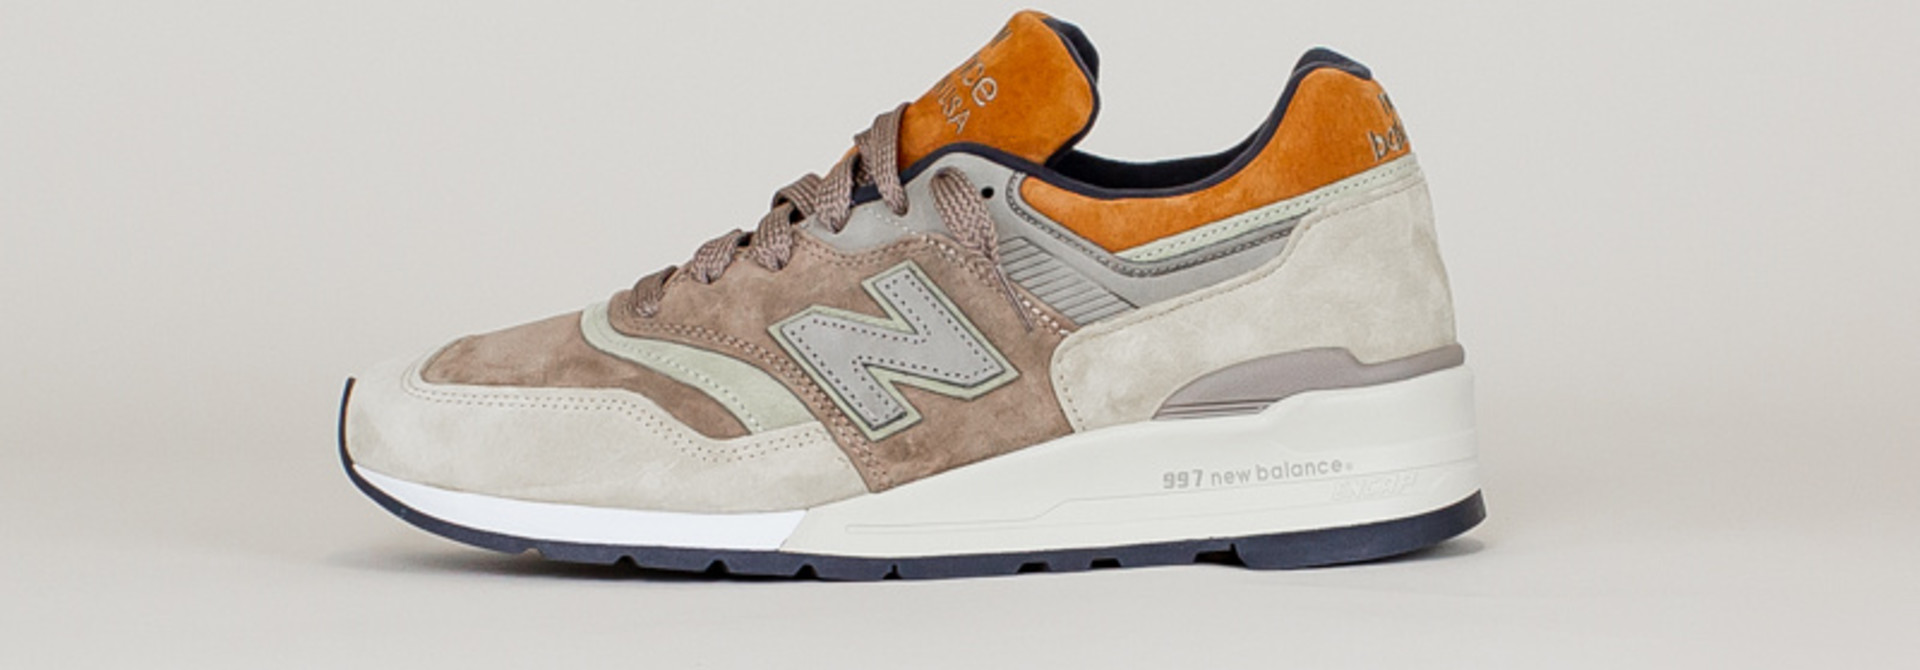 New Balance 997 NAJ - Tan/ Brown